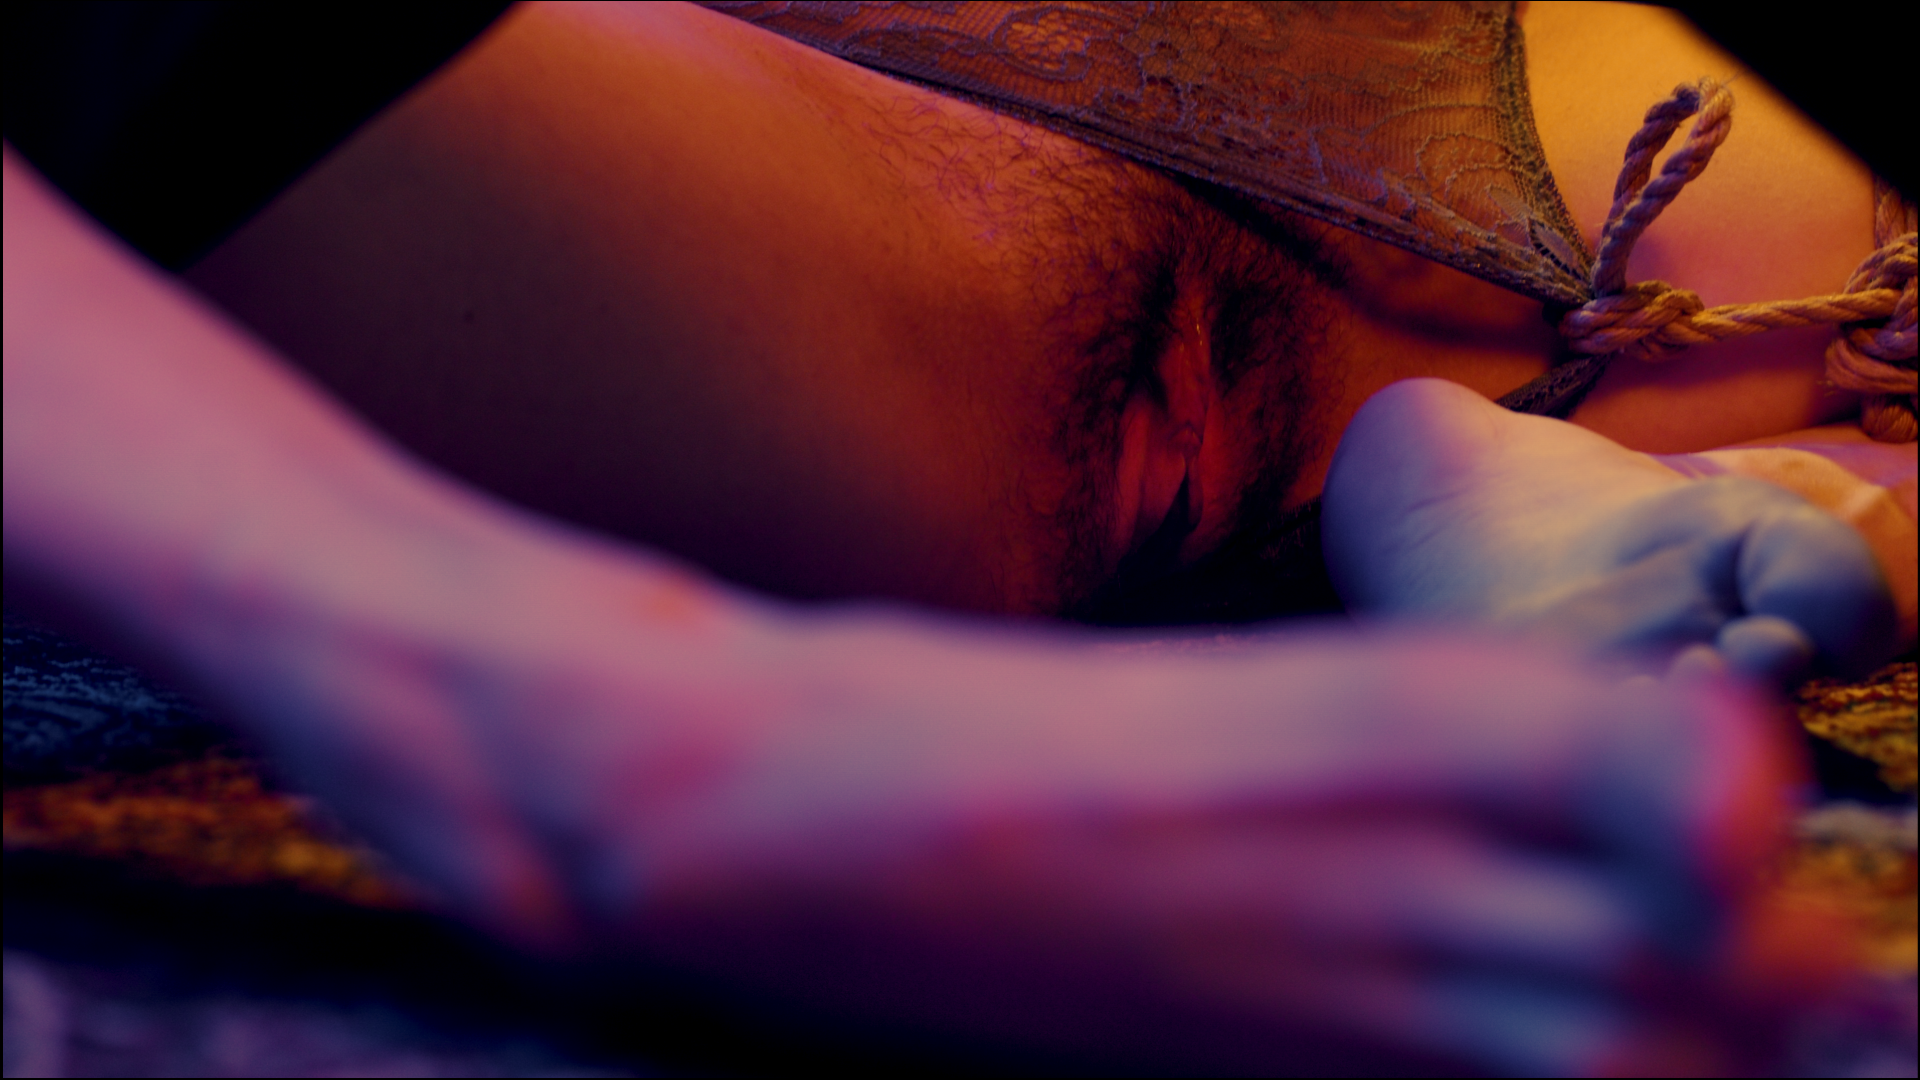 Close up of Nina's crotch as they sit with legs open, a shibari rope tied to their underwear pulling it to the side